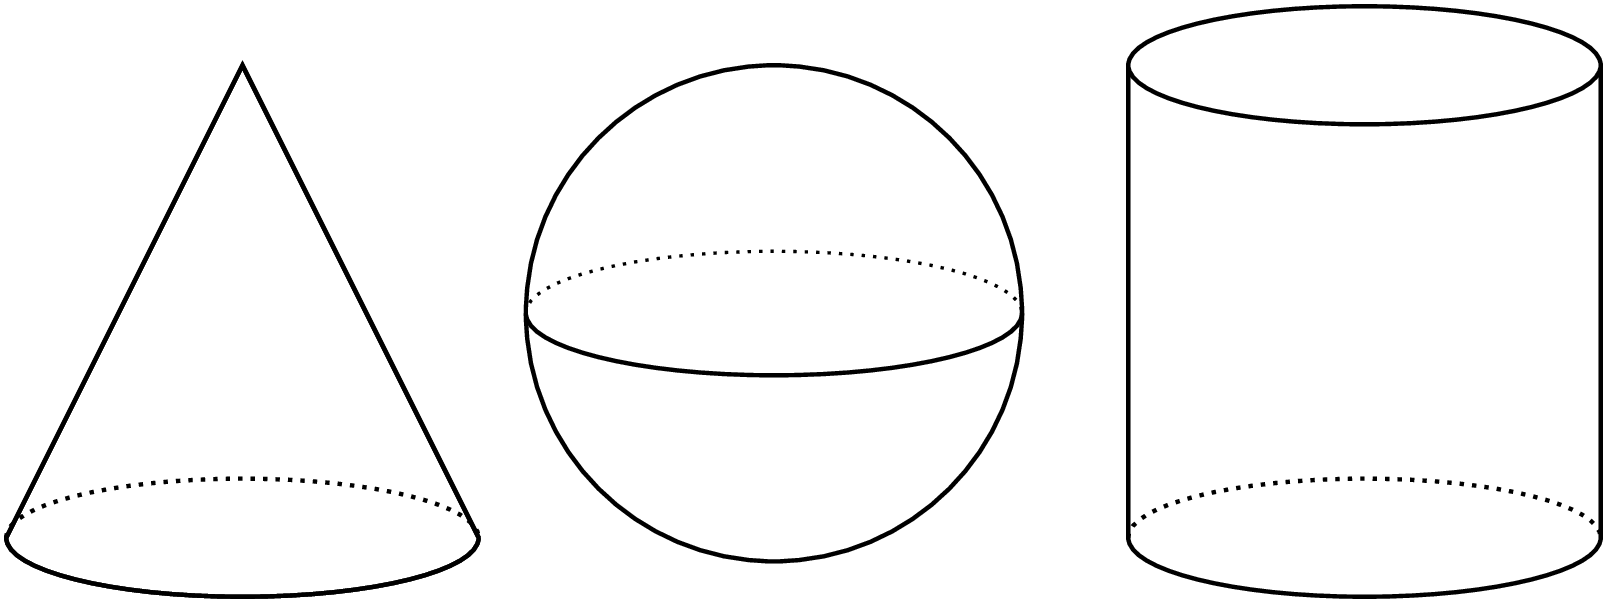 An image with three shapes: a cone, a sphere and a cylinder.